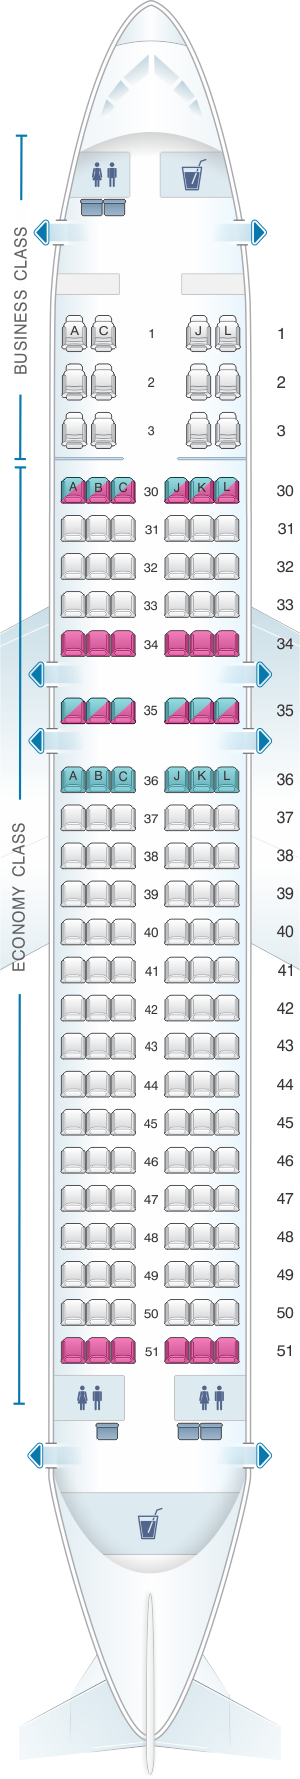 Seat map for Saudi Arabian Airlines Airbus A320 200 CEO